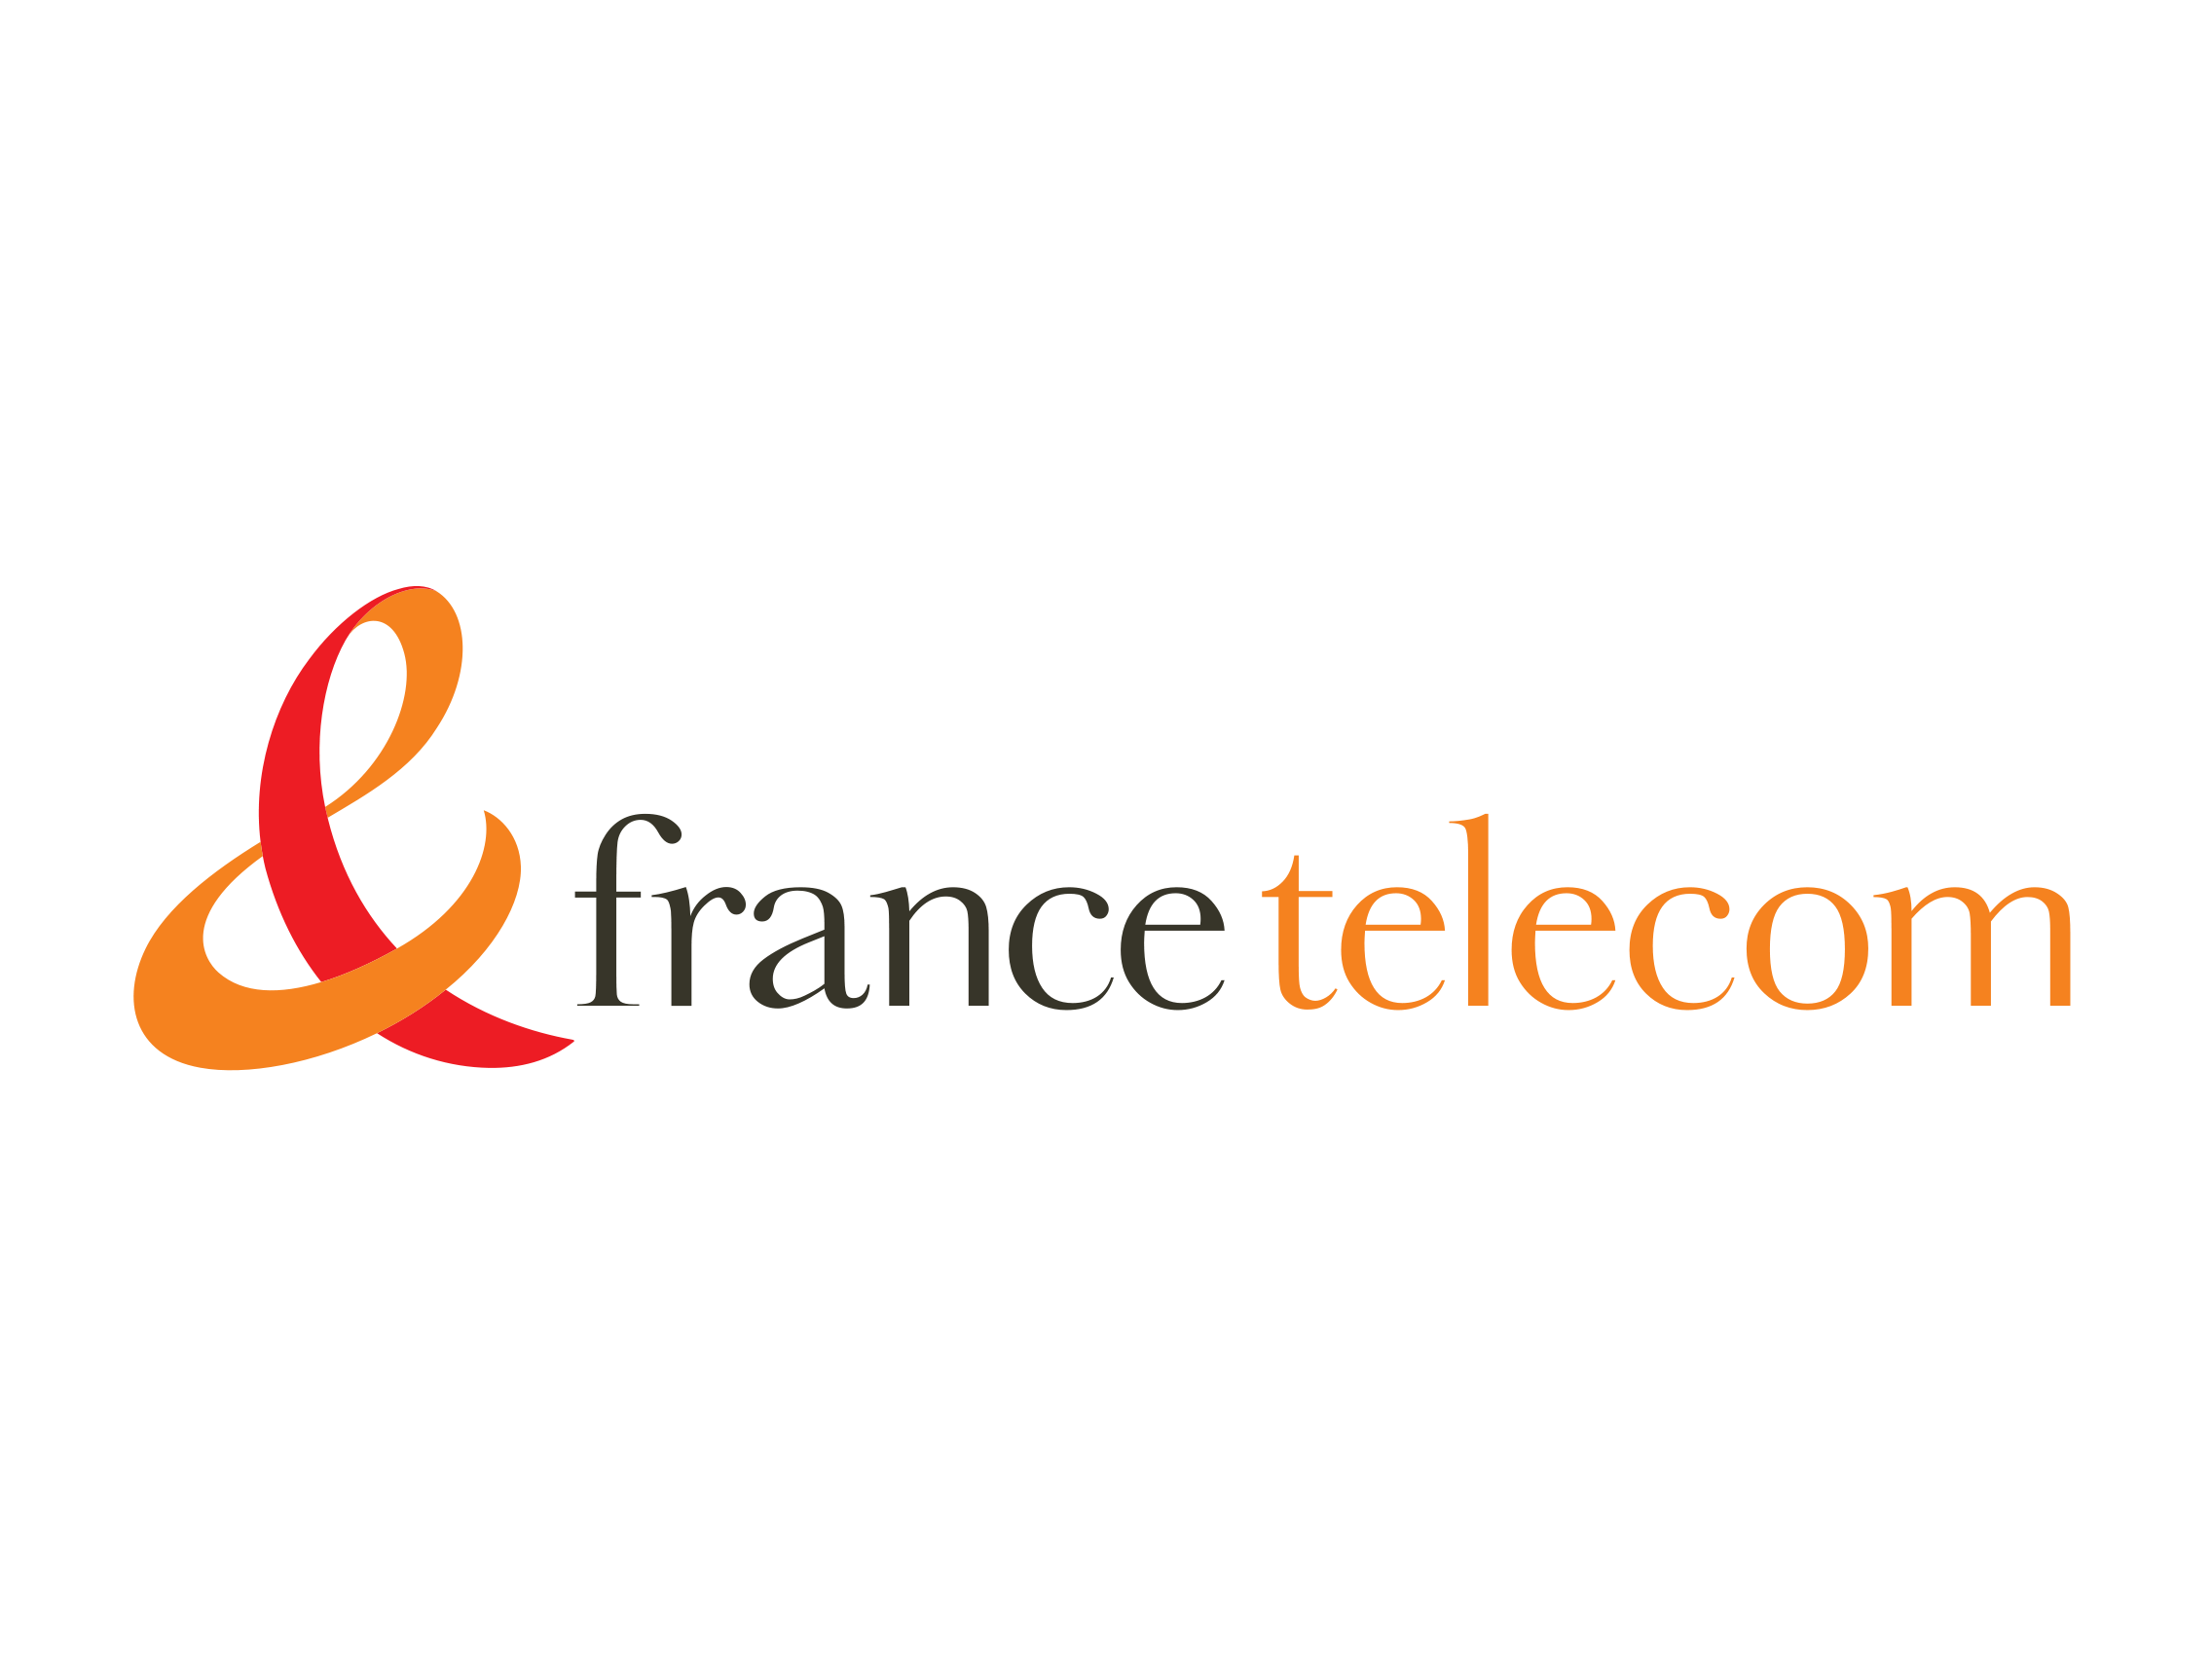 France telecom logo logok for Cable france telecom exterieur